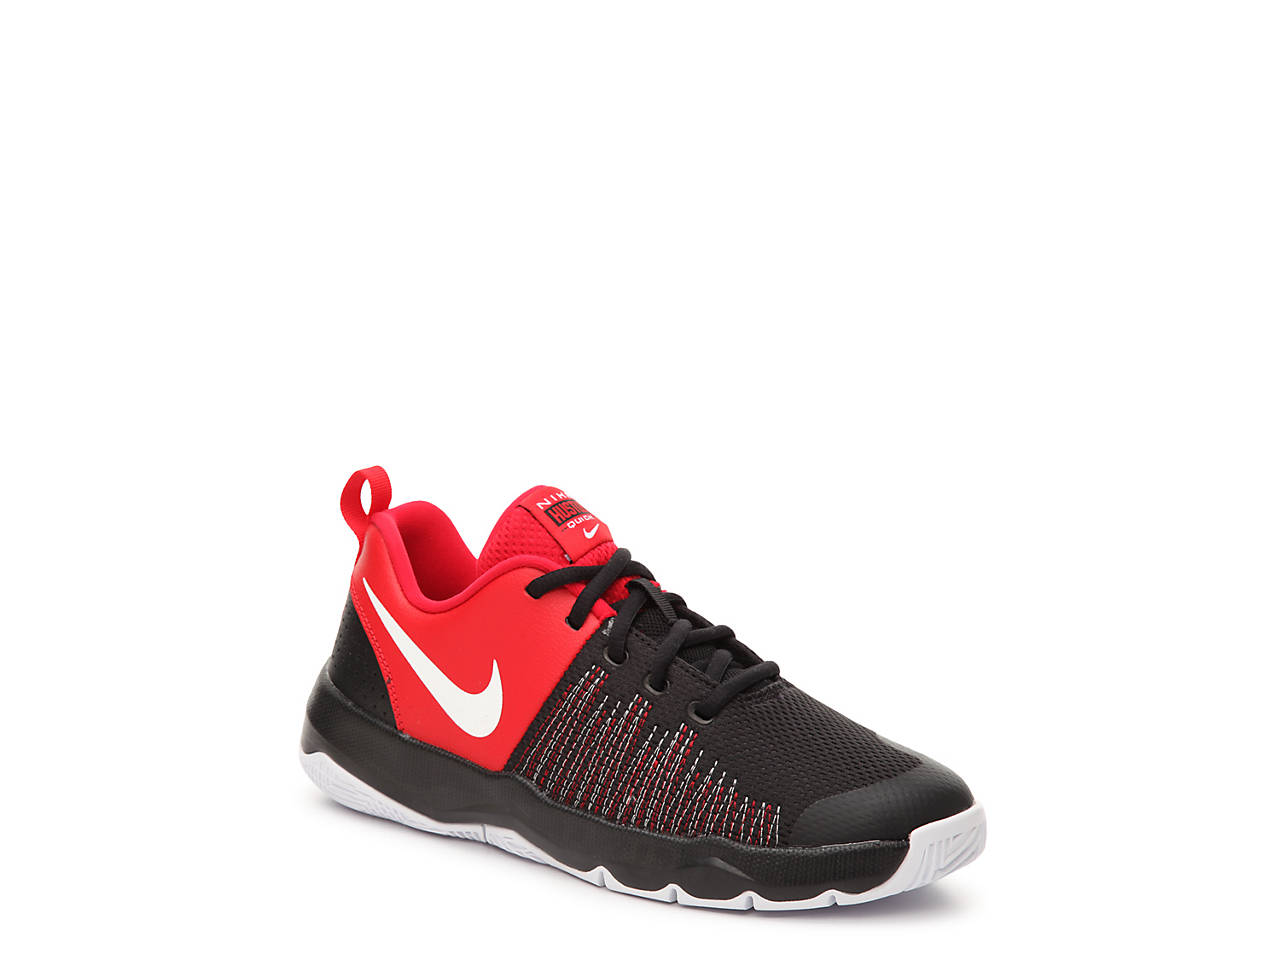 new arrivals 363de 5ab93 Team Hustle Quick Youth Basketball Shoe